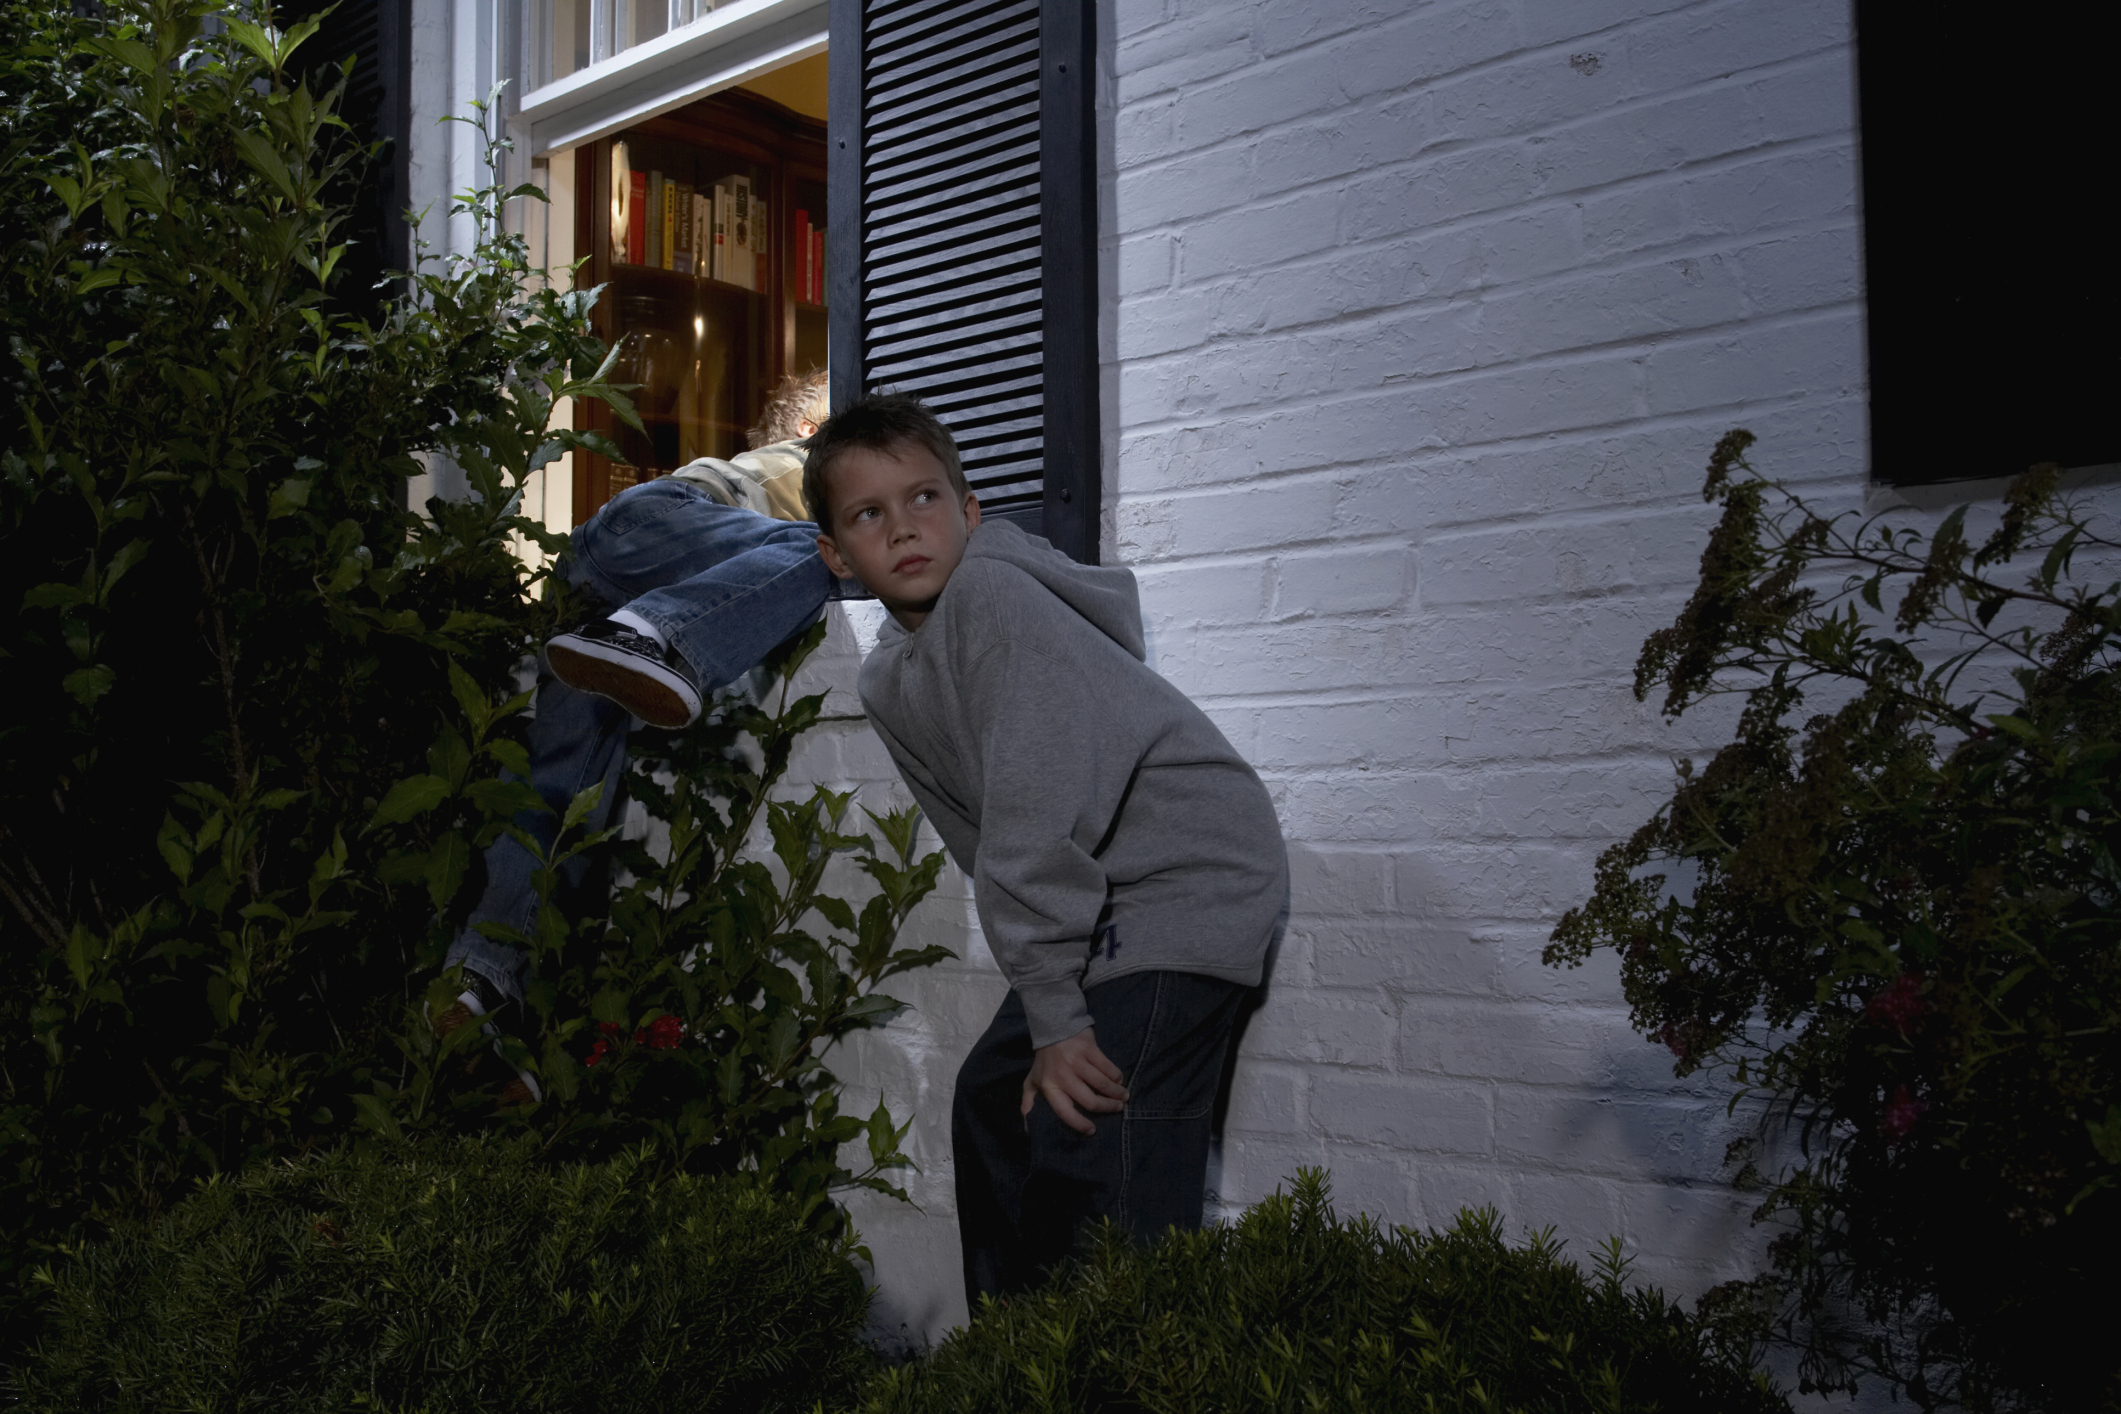 how to keep kids from sneaking out healthfully